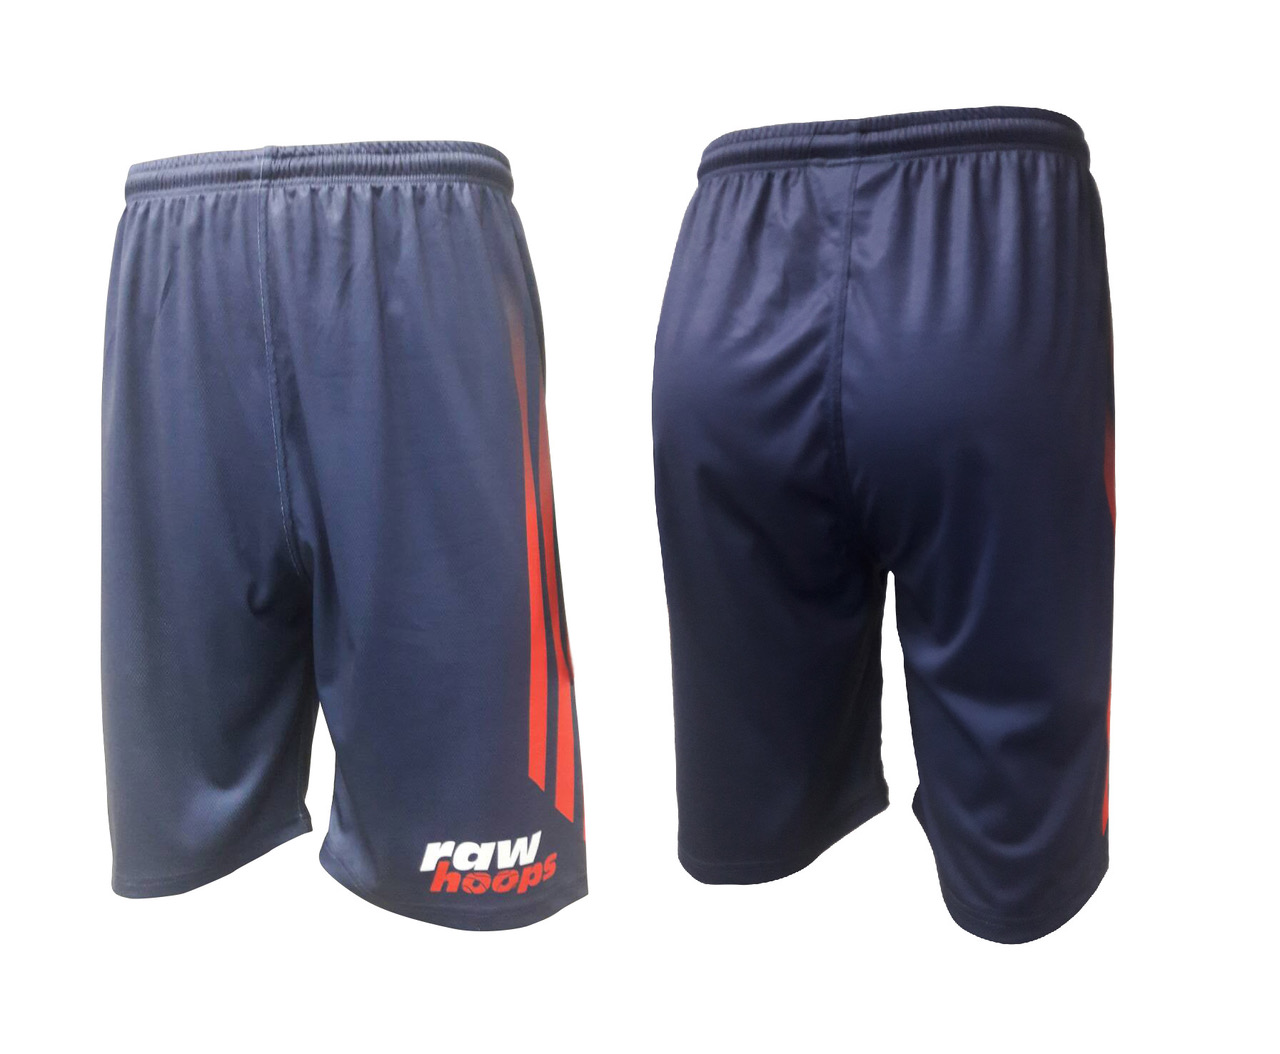 PT - FP016 Basketball Shorts copy